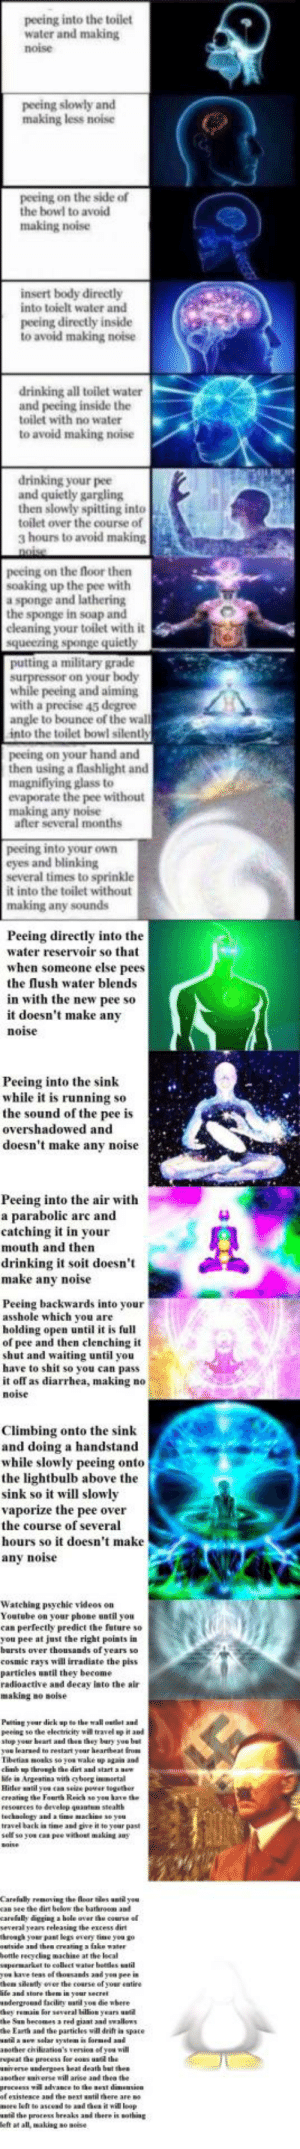 "F U R T H E R: peeing into the toilet  water and making  noise  peeing slowly and  making less noise  peeing on the side of  the bowl to avoid  making noise  insert body directly  into toielt water and  peeing directly inside  to avoid making noise  drinking all toilet water  and peeing inside the  toilet with no water  to avoid making noise  drinking your pee  and quietly gargling  then slowly spitting into  toilet over the course of  3 hours to avoid making  peeing on the floor then  soaking up the pee with  a sponge and lathering  the sponge in soap and  cleaning your toilet with it  a military grade  while peeing and aiming  with a precise 45 degree  angle to bounce of the wal  into the toilet bowl silenth  peeing on your hand and  then using a flashlight and  magnifiying glass to  evaporate the pee without  making any noise  after several months  peeing into your oWn  eyes and blinking  several times to sprinkle  it into the toilet without  making any sounds  Peeing directly into the  water reservoir so that  when someone else pees  the lush water blends  in with the new pee so  it doesn't make any  noi  Peeing into the sink  while it is running so  the sound of the pee is  overshadowed and  doesn't make any noise  Peeing into the air with  a parabolic arc and  catching it in your  mouth and then  drinking t st doesn't  make anv noise  Peeing backwards into your  asshole which you are  holding open until it is full  of pee and then clenching it  shut and waiting until you  have to shit so you can pass  noise  Climbing onto the sink  and doing a handstand  while slowly peeing onto  the lightbulb above the  sink so it will slo  vaporize the pee over  the course of several  hours so it doesn't make  any noise  Watching psyehic videes on  Youtube on your phone until you  can perfectly predict the feture so  you pee at just the right points in  barsts over thousands of  cosmic rays will irradiate the piss  particles until they become  radioactive and decay isto the air  peeing so the electricitywi ravel it ad  stop your beart and then he bary yue bet  vou learsed to restart year heartbeat fro  Tibetias mosks so yos wake up iaia and  chinb upthhrongh the dirt and start e  lide is Argestina wirh cybrg inortal  Hitler watil yos caa seice paer logether  creatiag the Fourth Reich so you bave the  resources t develep quanten stealth  techoclogy and a tima machine soyou  travel back is tine and give it to yeur past  sellf so yon can pee vithost making any  Careful  an see the dirt below the barhroess and  remoing the fleor les  antil ysu  several years releasing tbe excess dirt  hreagh yor pant legs overy tine yea g  creating a fake  botle recycliag machise at the lecal  itpermarket tu collect water bottles ย.til  yos lave tess of chowsands aad yeu pee is  hem silently over the coarse of yoar entire  tore tbem i  undergronsd facility wstil yos die where  dey remain for several billion years u  he San becomes a red giaat aad swallows  the Earth and the particles will drift is space  apother civiluatiea's version ef yes will  ierse undergoes beat death but thes  of esistesce and the pext antil here are  neee left to ascend s aad Gen it will loop  ntil the process breaks and there i""othia  eft at all, making so soise F U R T H E R"